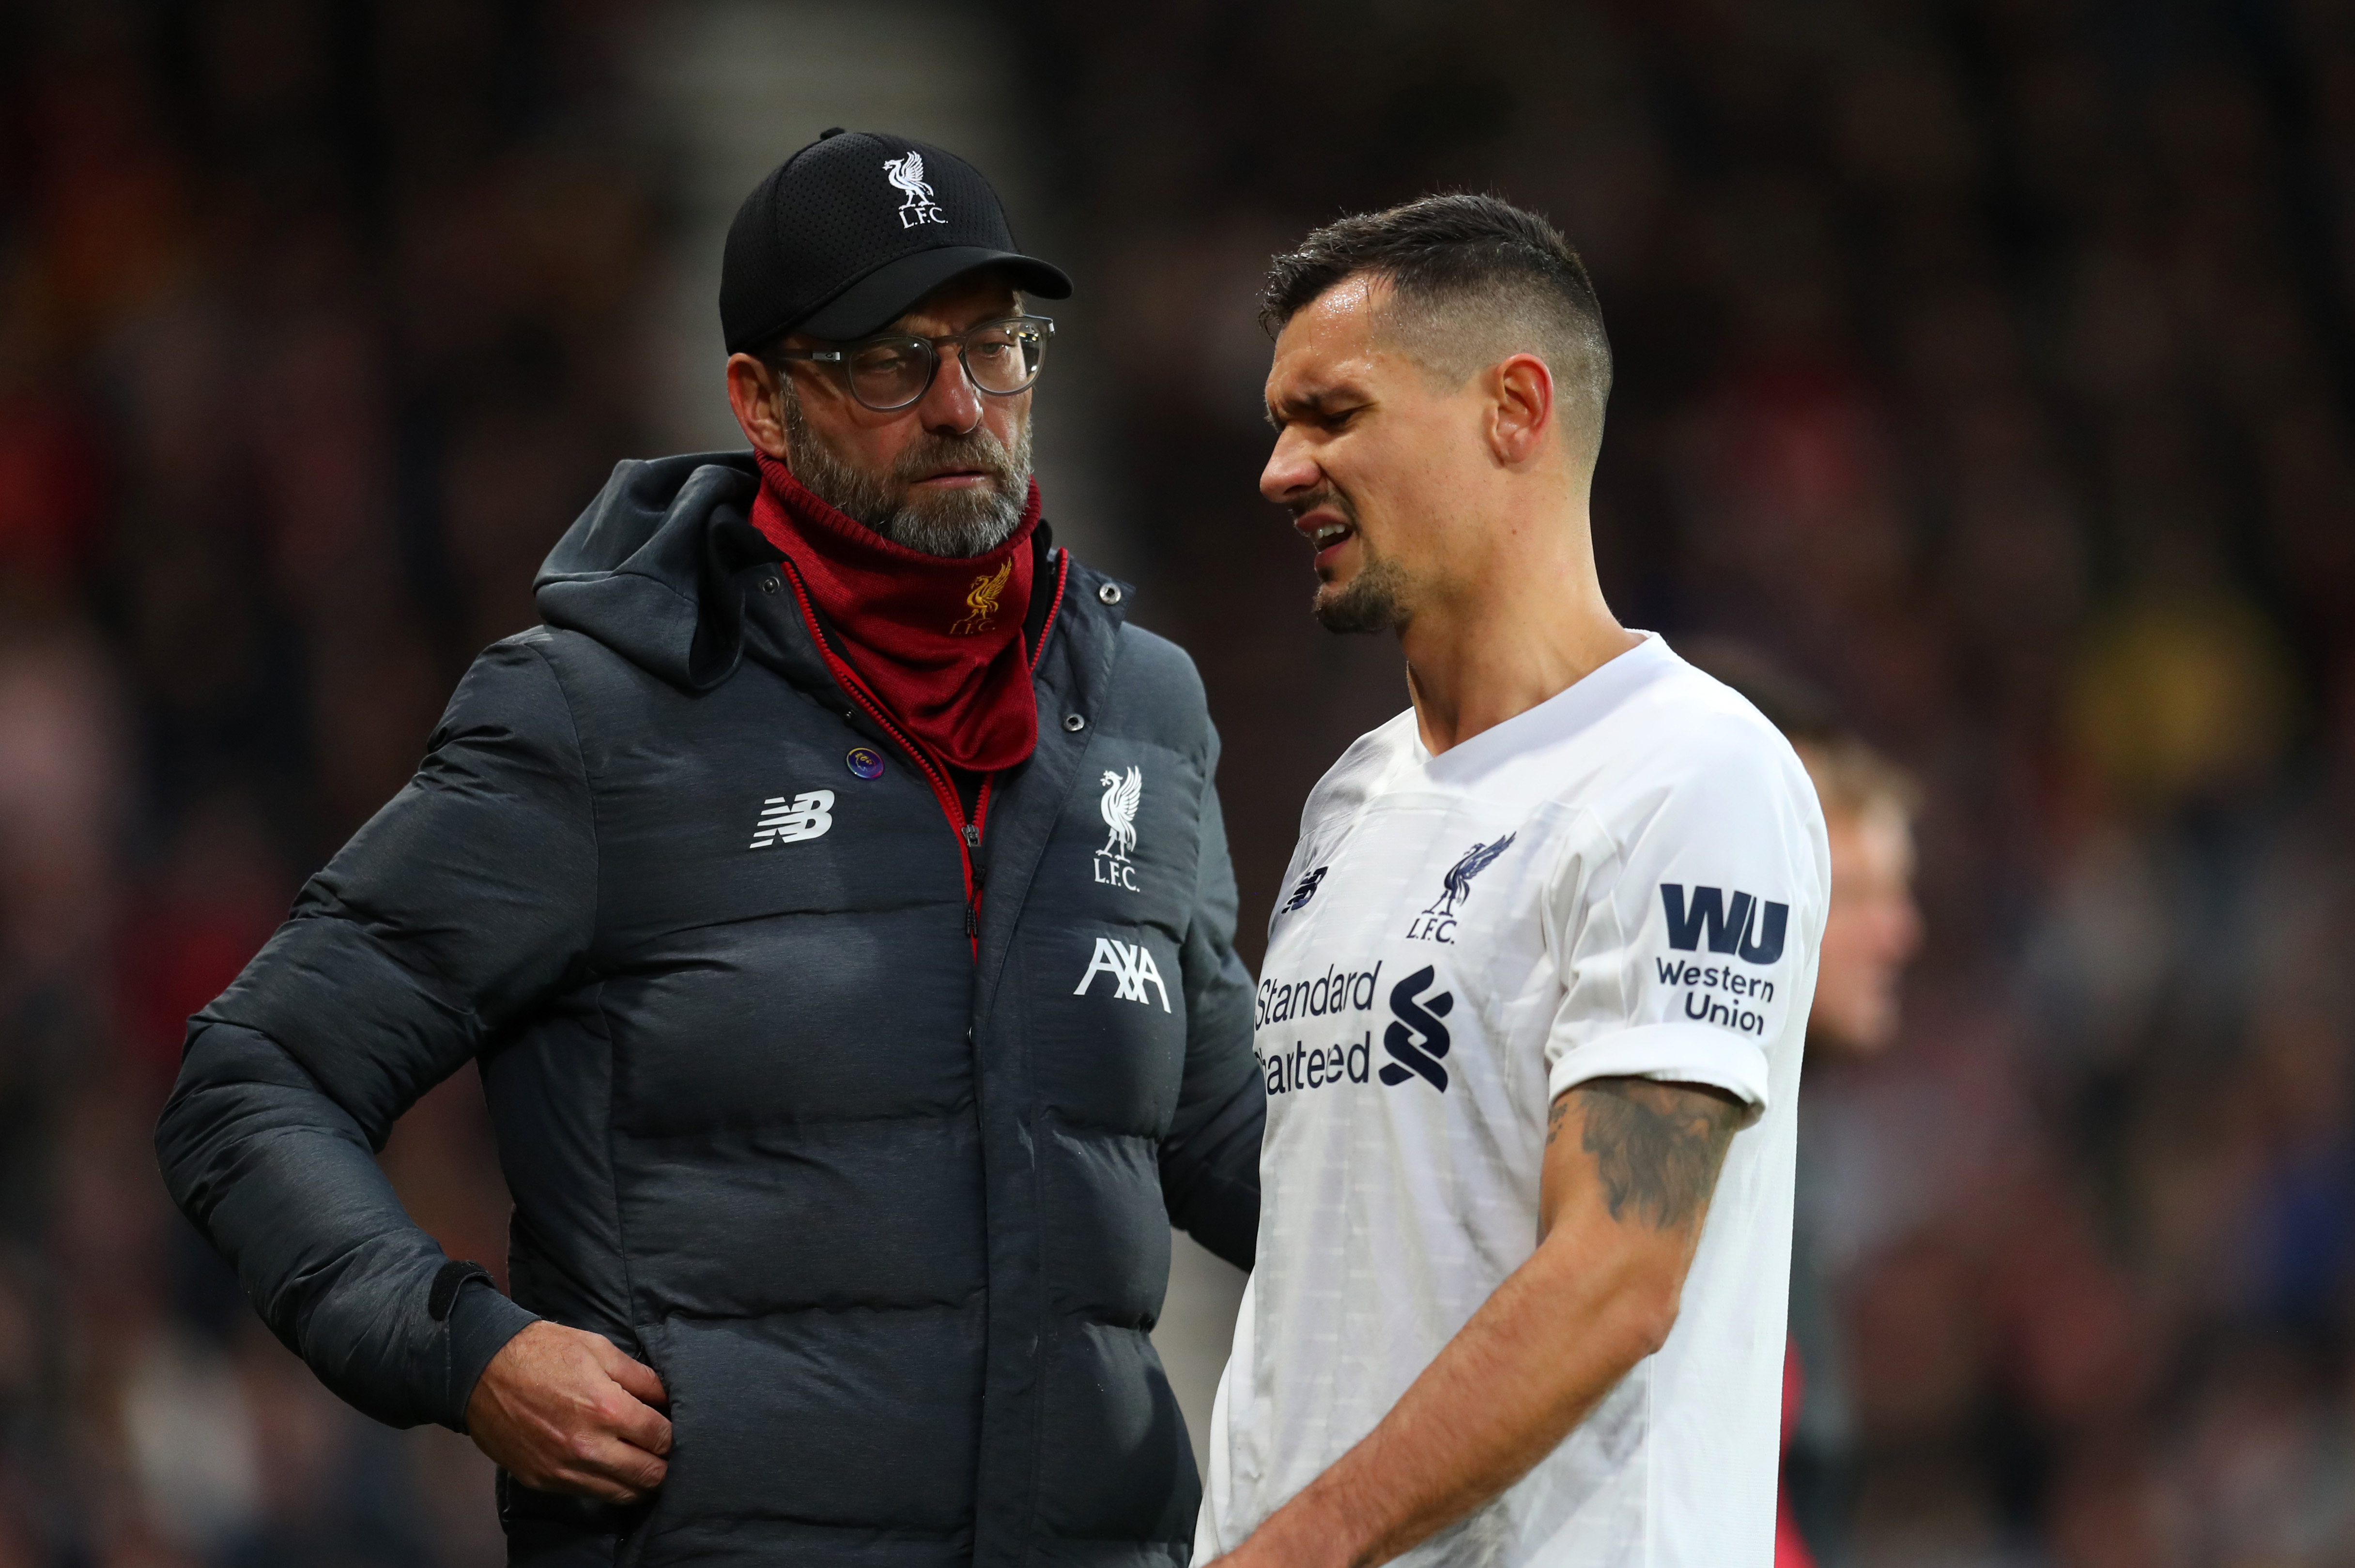 Lovren on his way out? (Photo by Catherine Ivill/Getty Images)